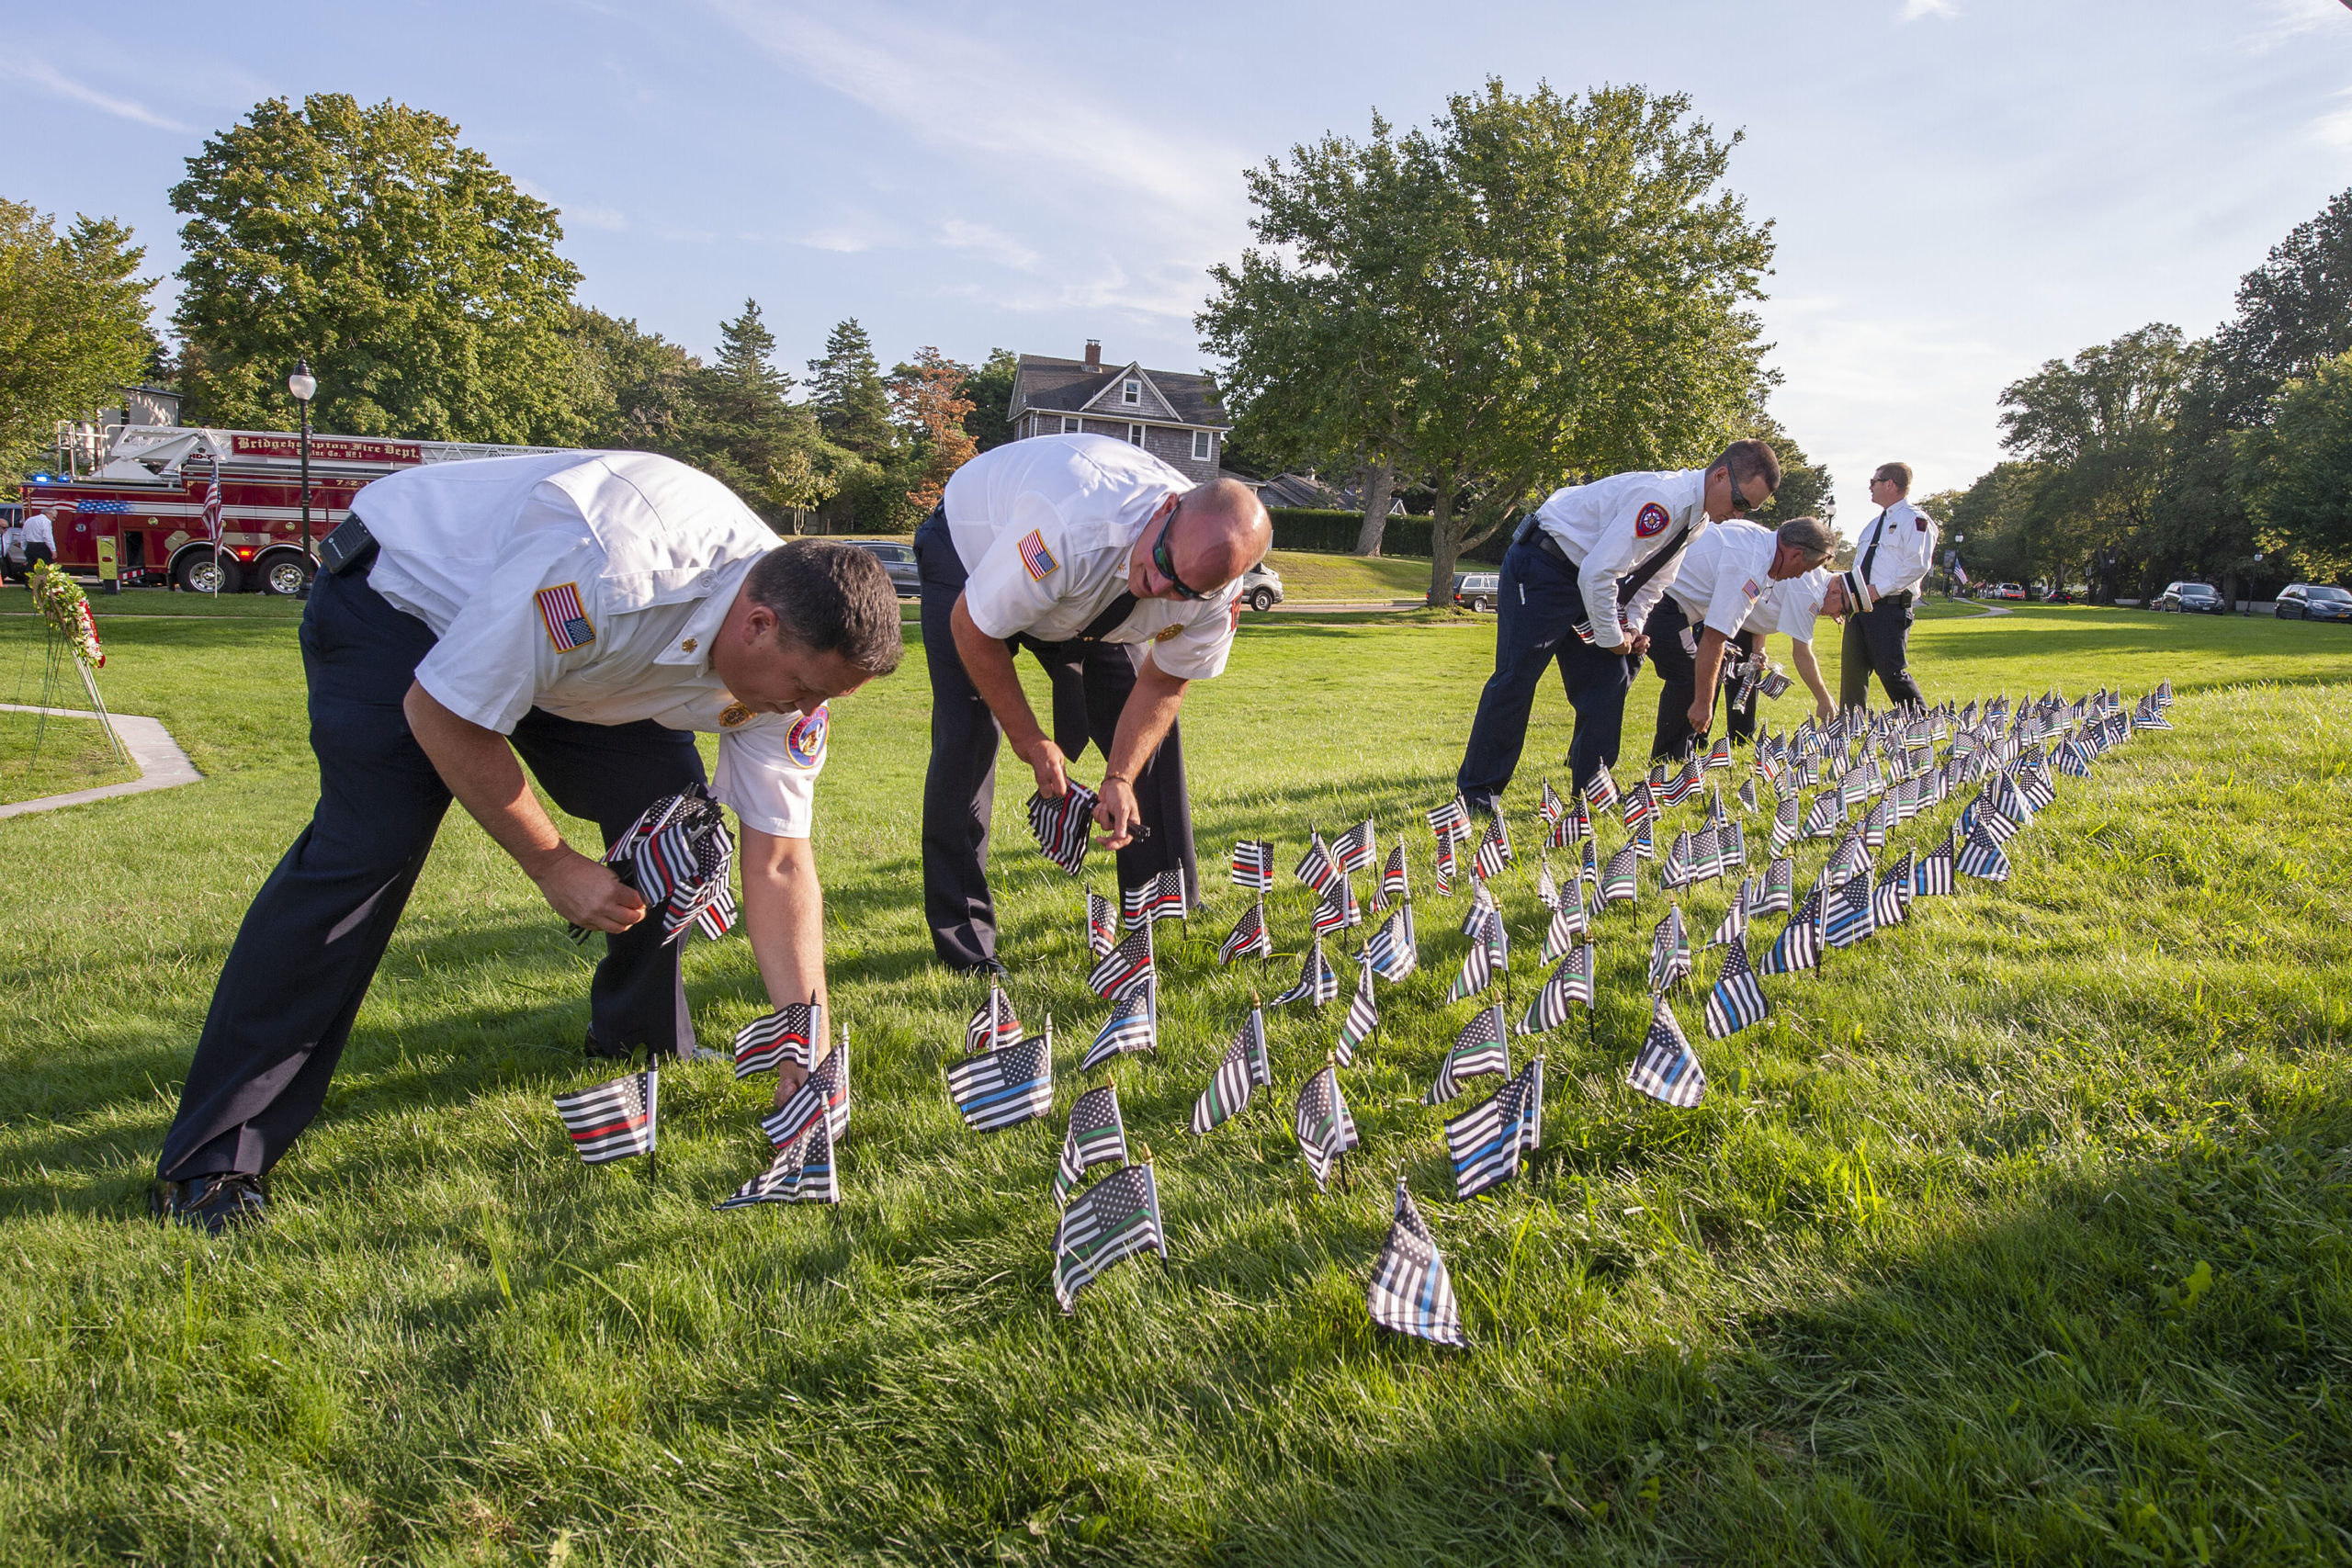 Firefighters from the Amagansett, Springs and Sag Harbor Fire Departments plant flags - one for each fire, police or military member killed at 9/11 - prior to the start of the ceremony commemorating the 20th anniversary of the attack on the World Trade Center, held on the Village Green in East Hampton on Saturday afternoon.